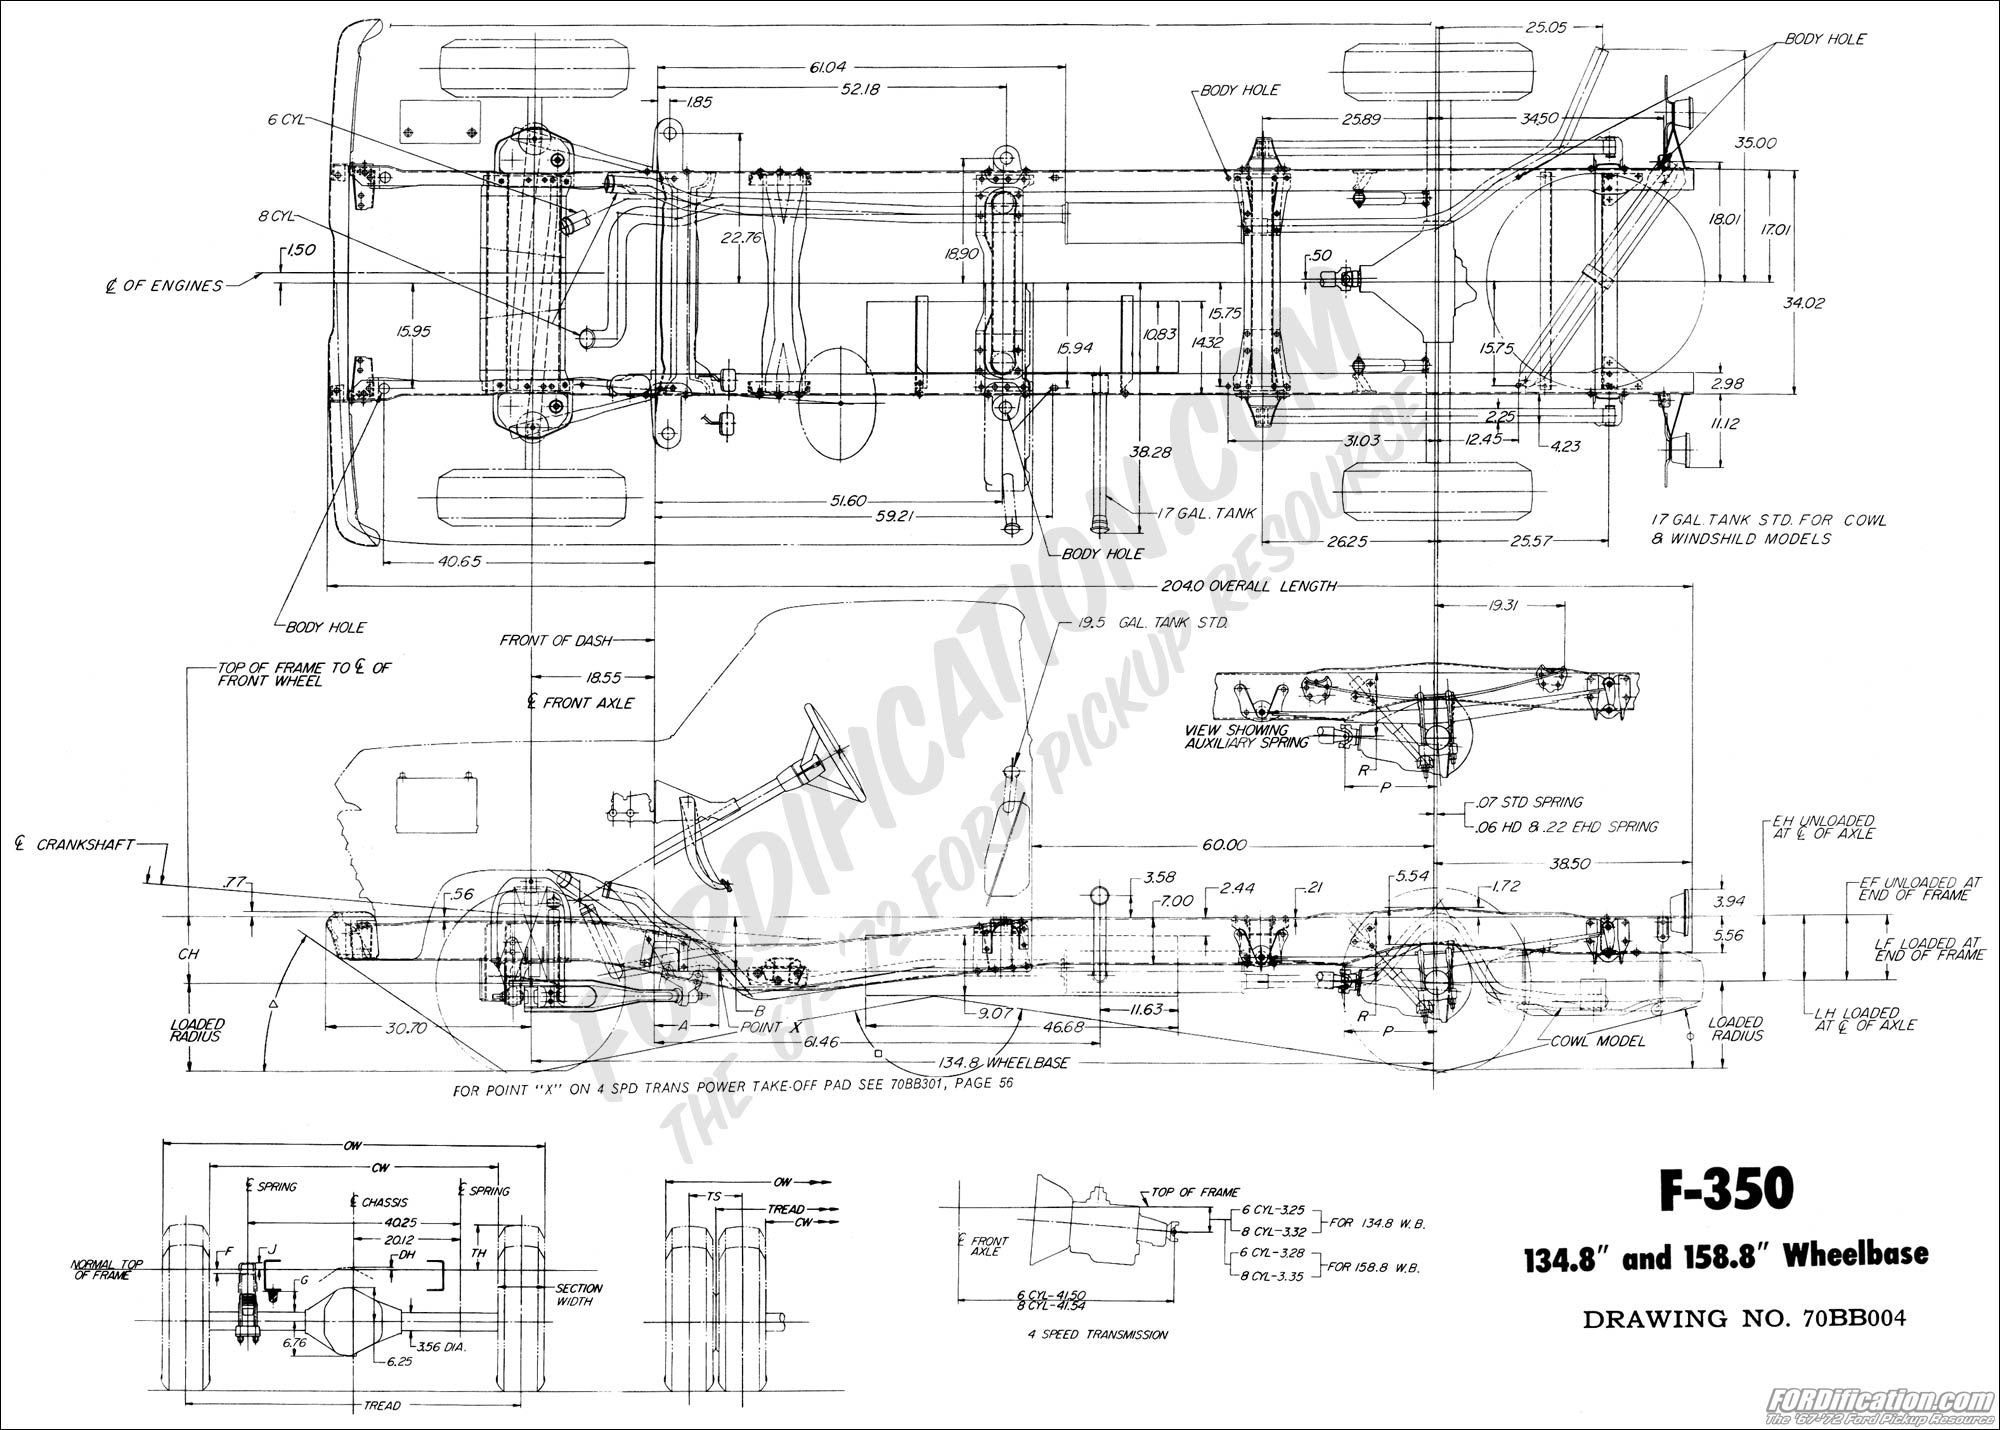 2003 Ford Escape Engine Diagram On 1978 F250 Steering Column Diagram